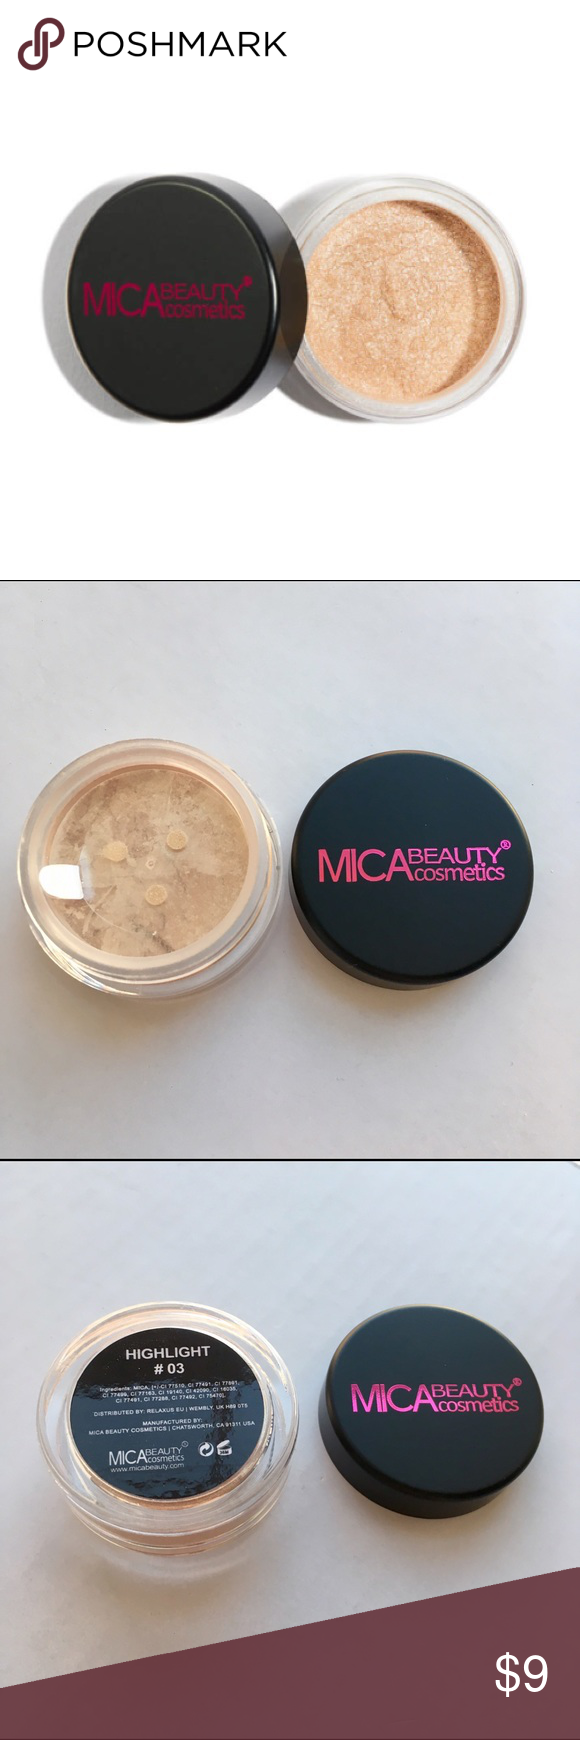 NEW mineral highlighter Brand new unopened highlighter by